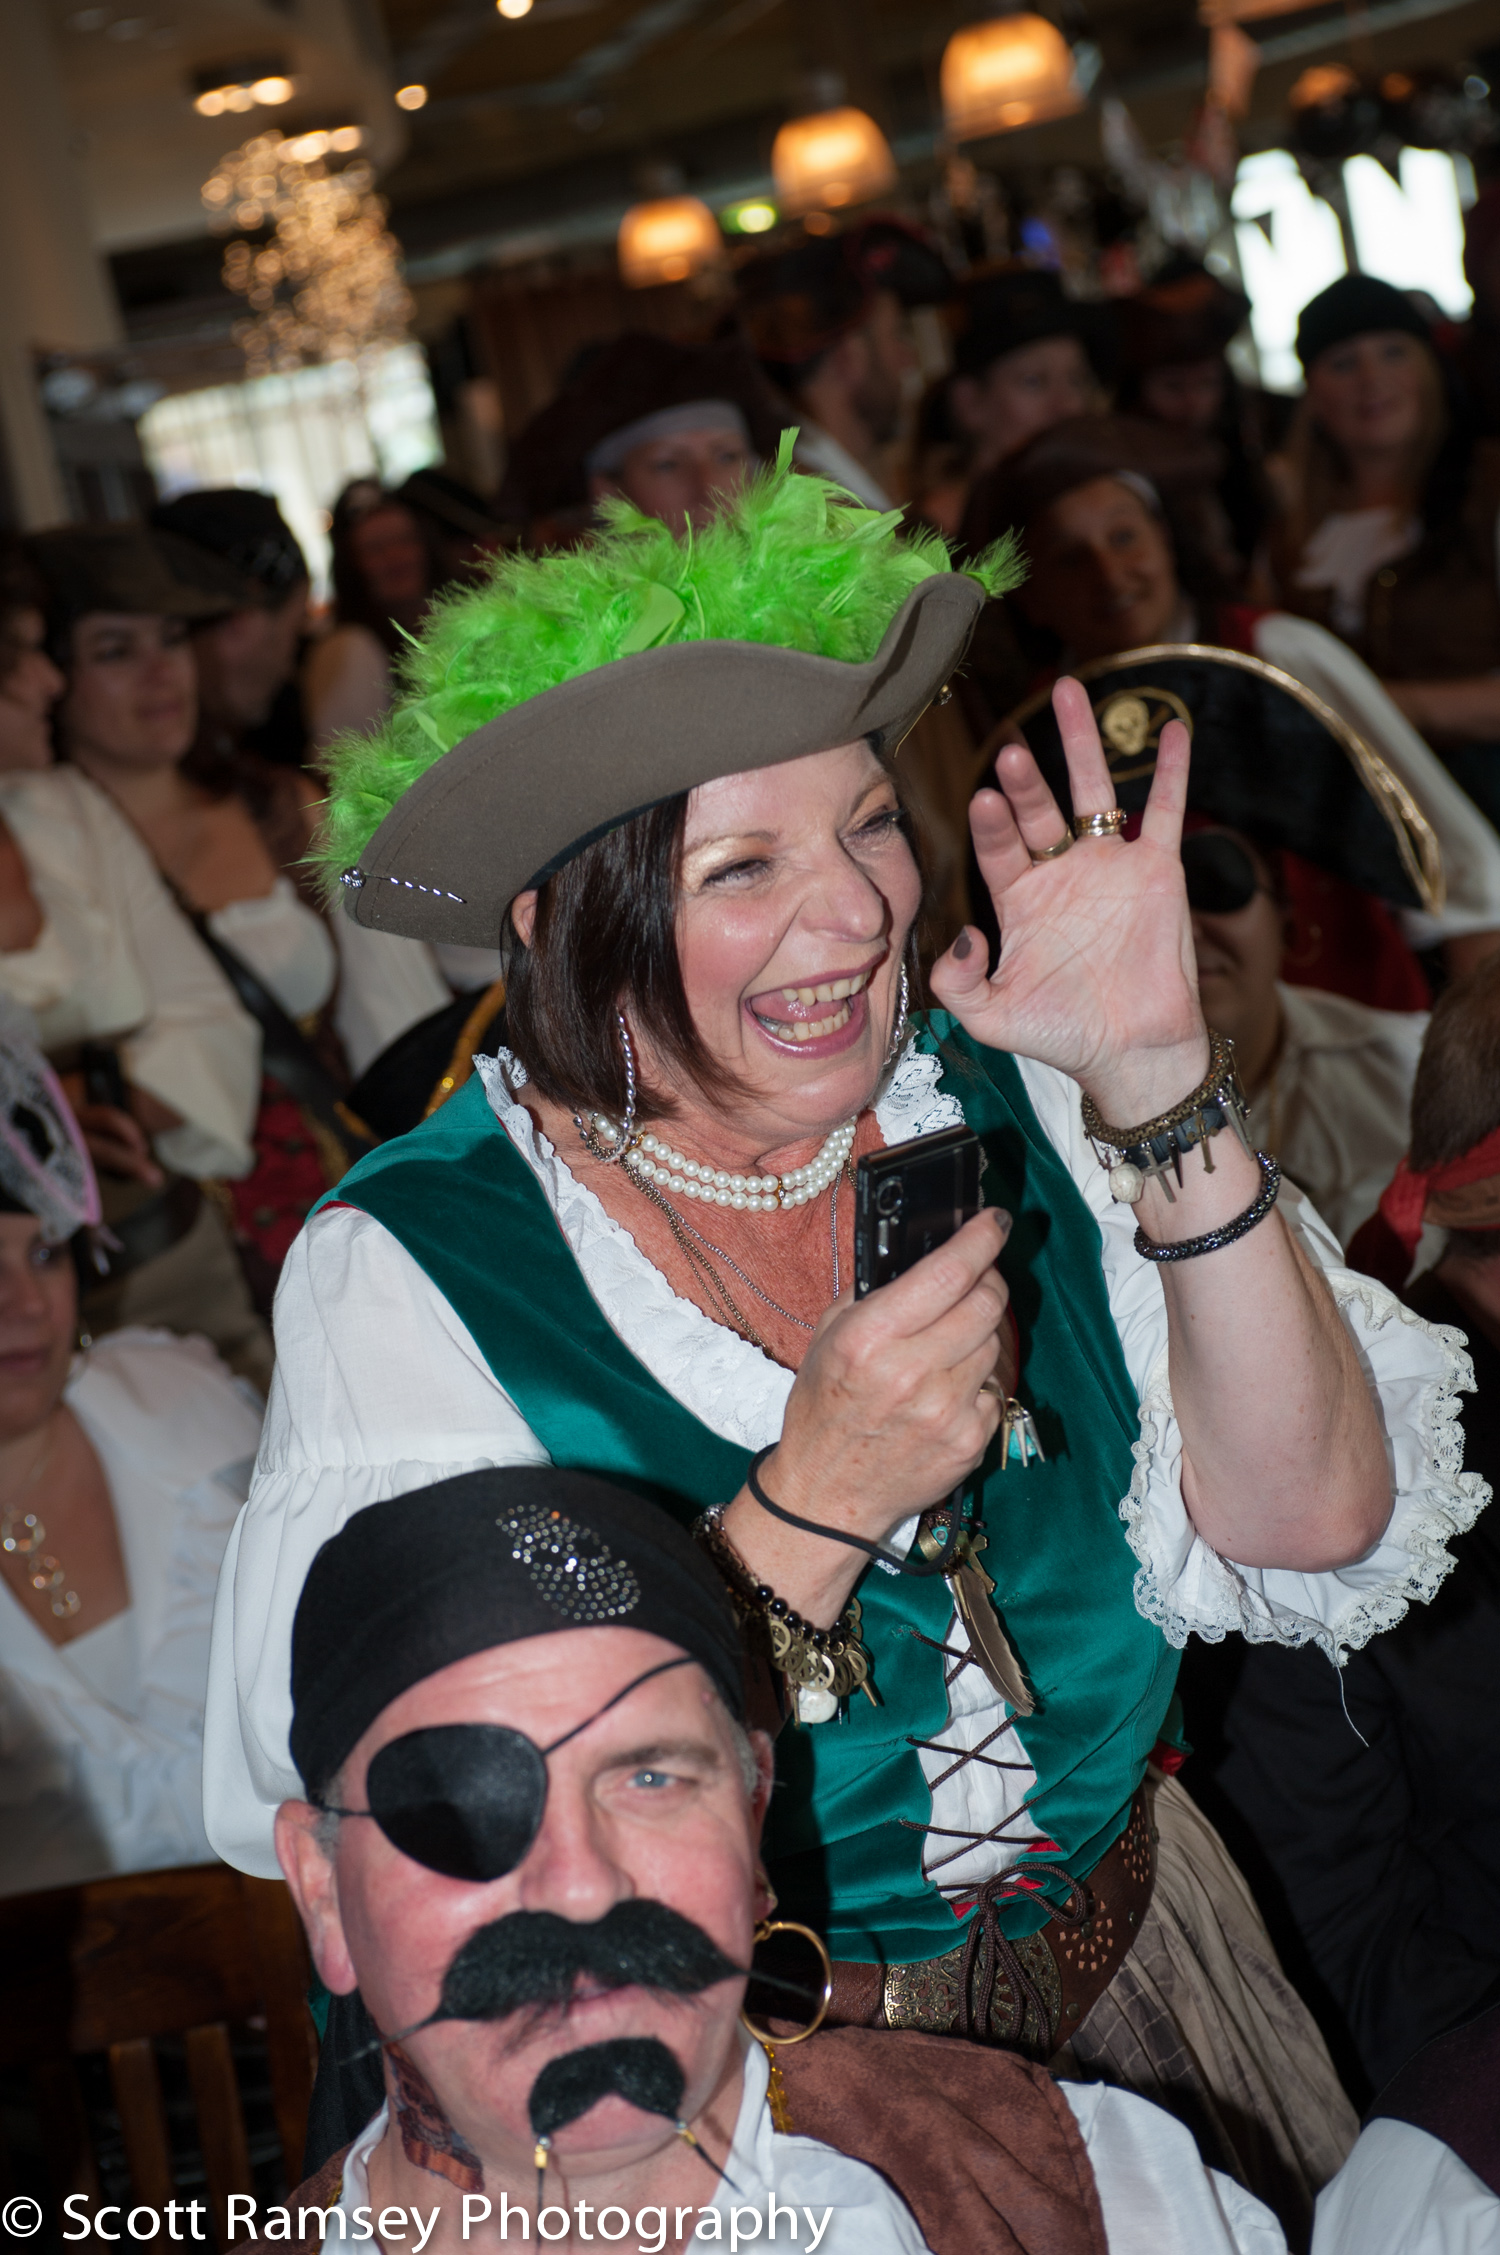 Brighton-Wedding-Photography-Pirate-Theme-Happy-Guest-140913-015